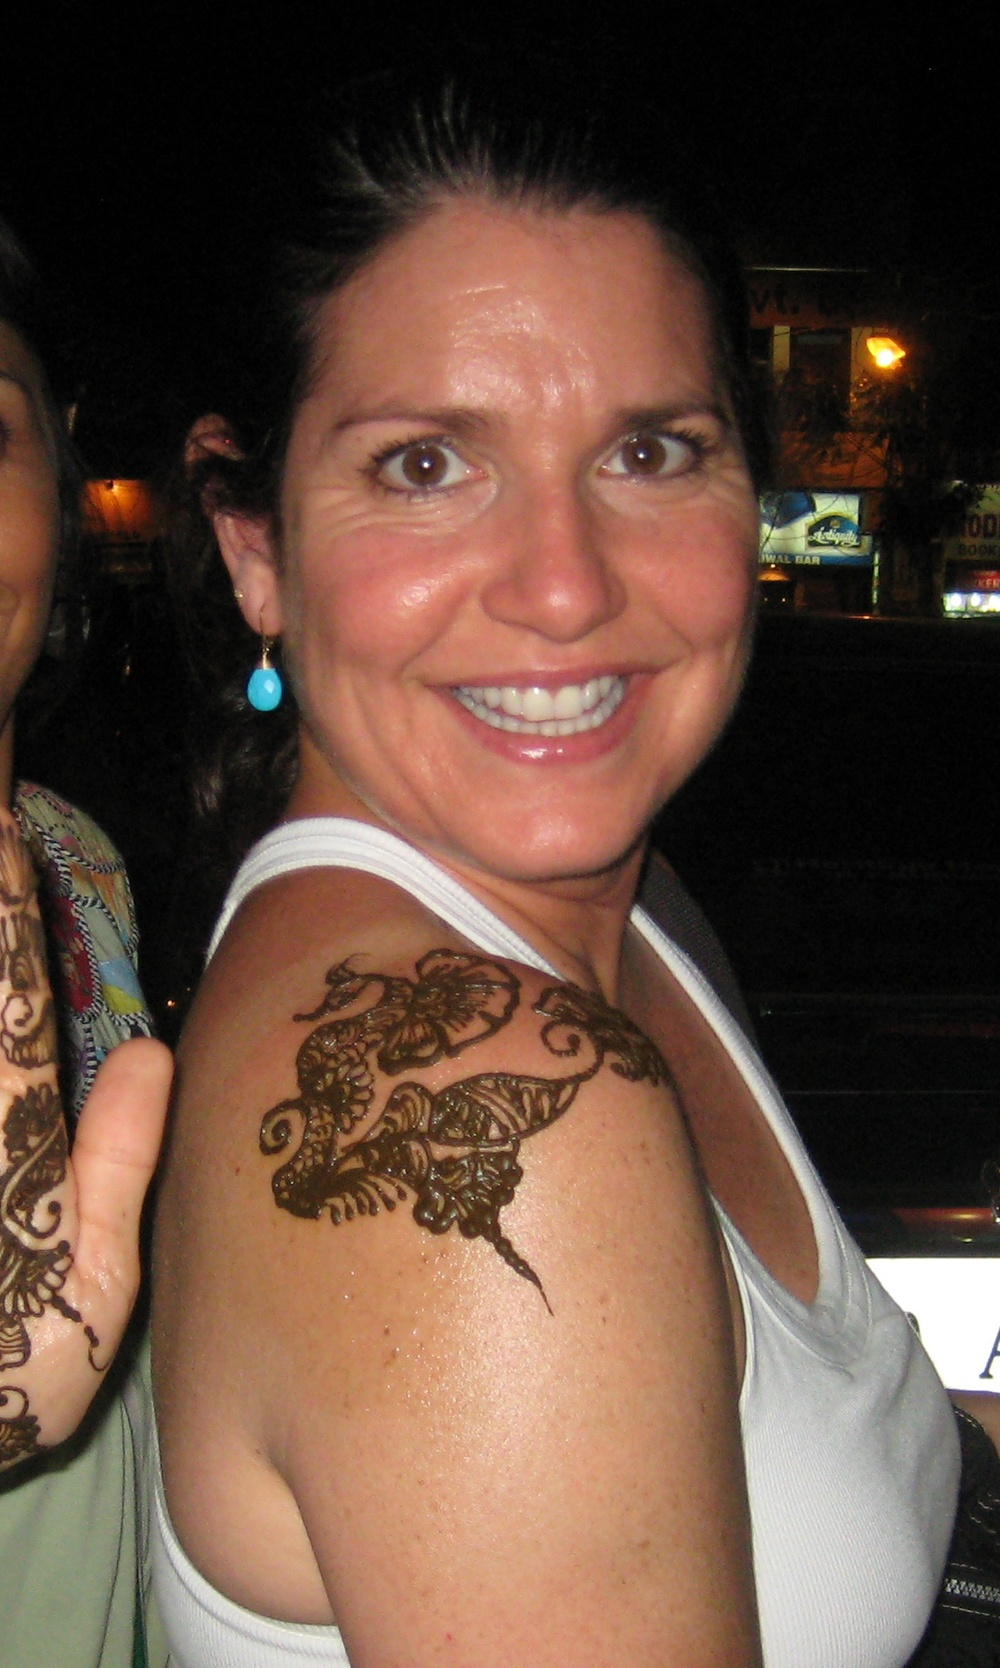 Showing off my new Henna tattoo, Agra